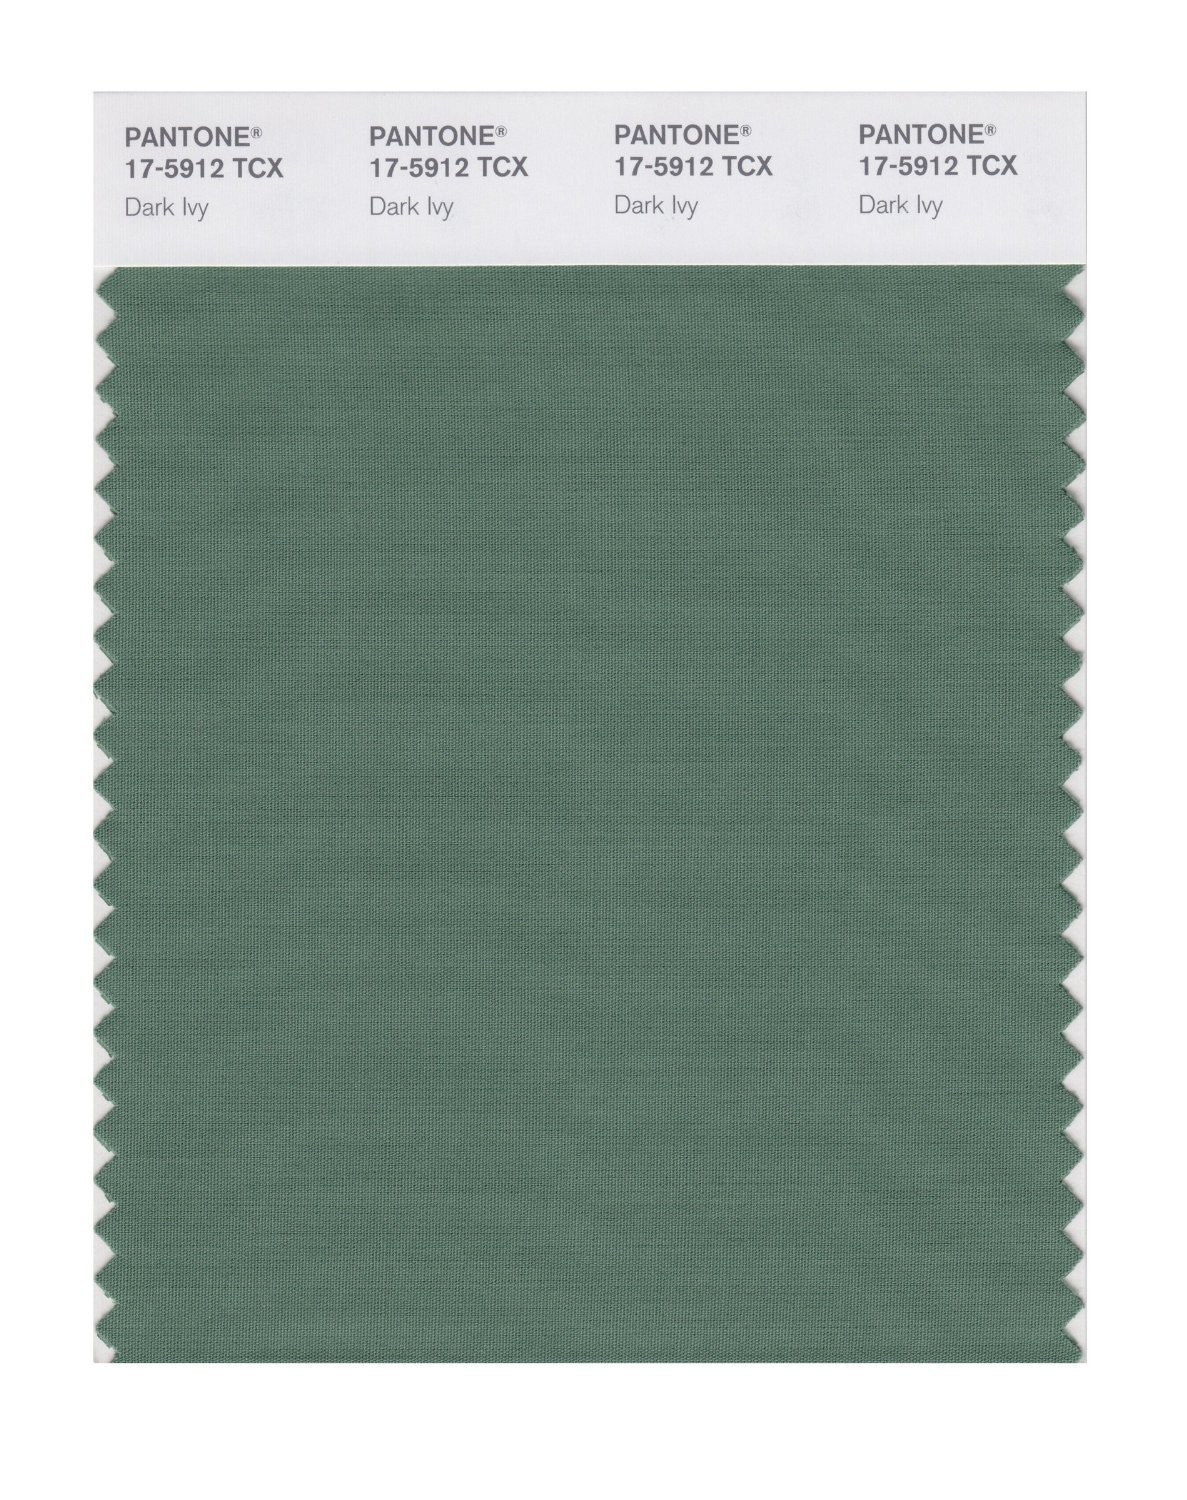 Pantone 17-5912 TCX Swatch Card Dark Ivy